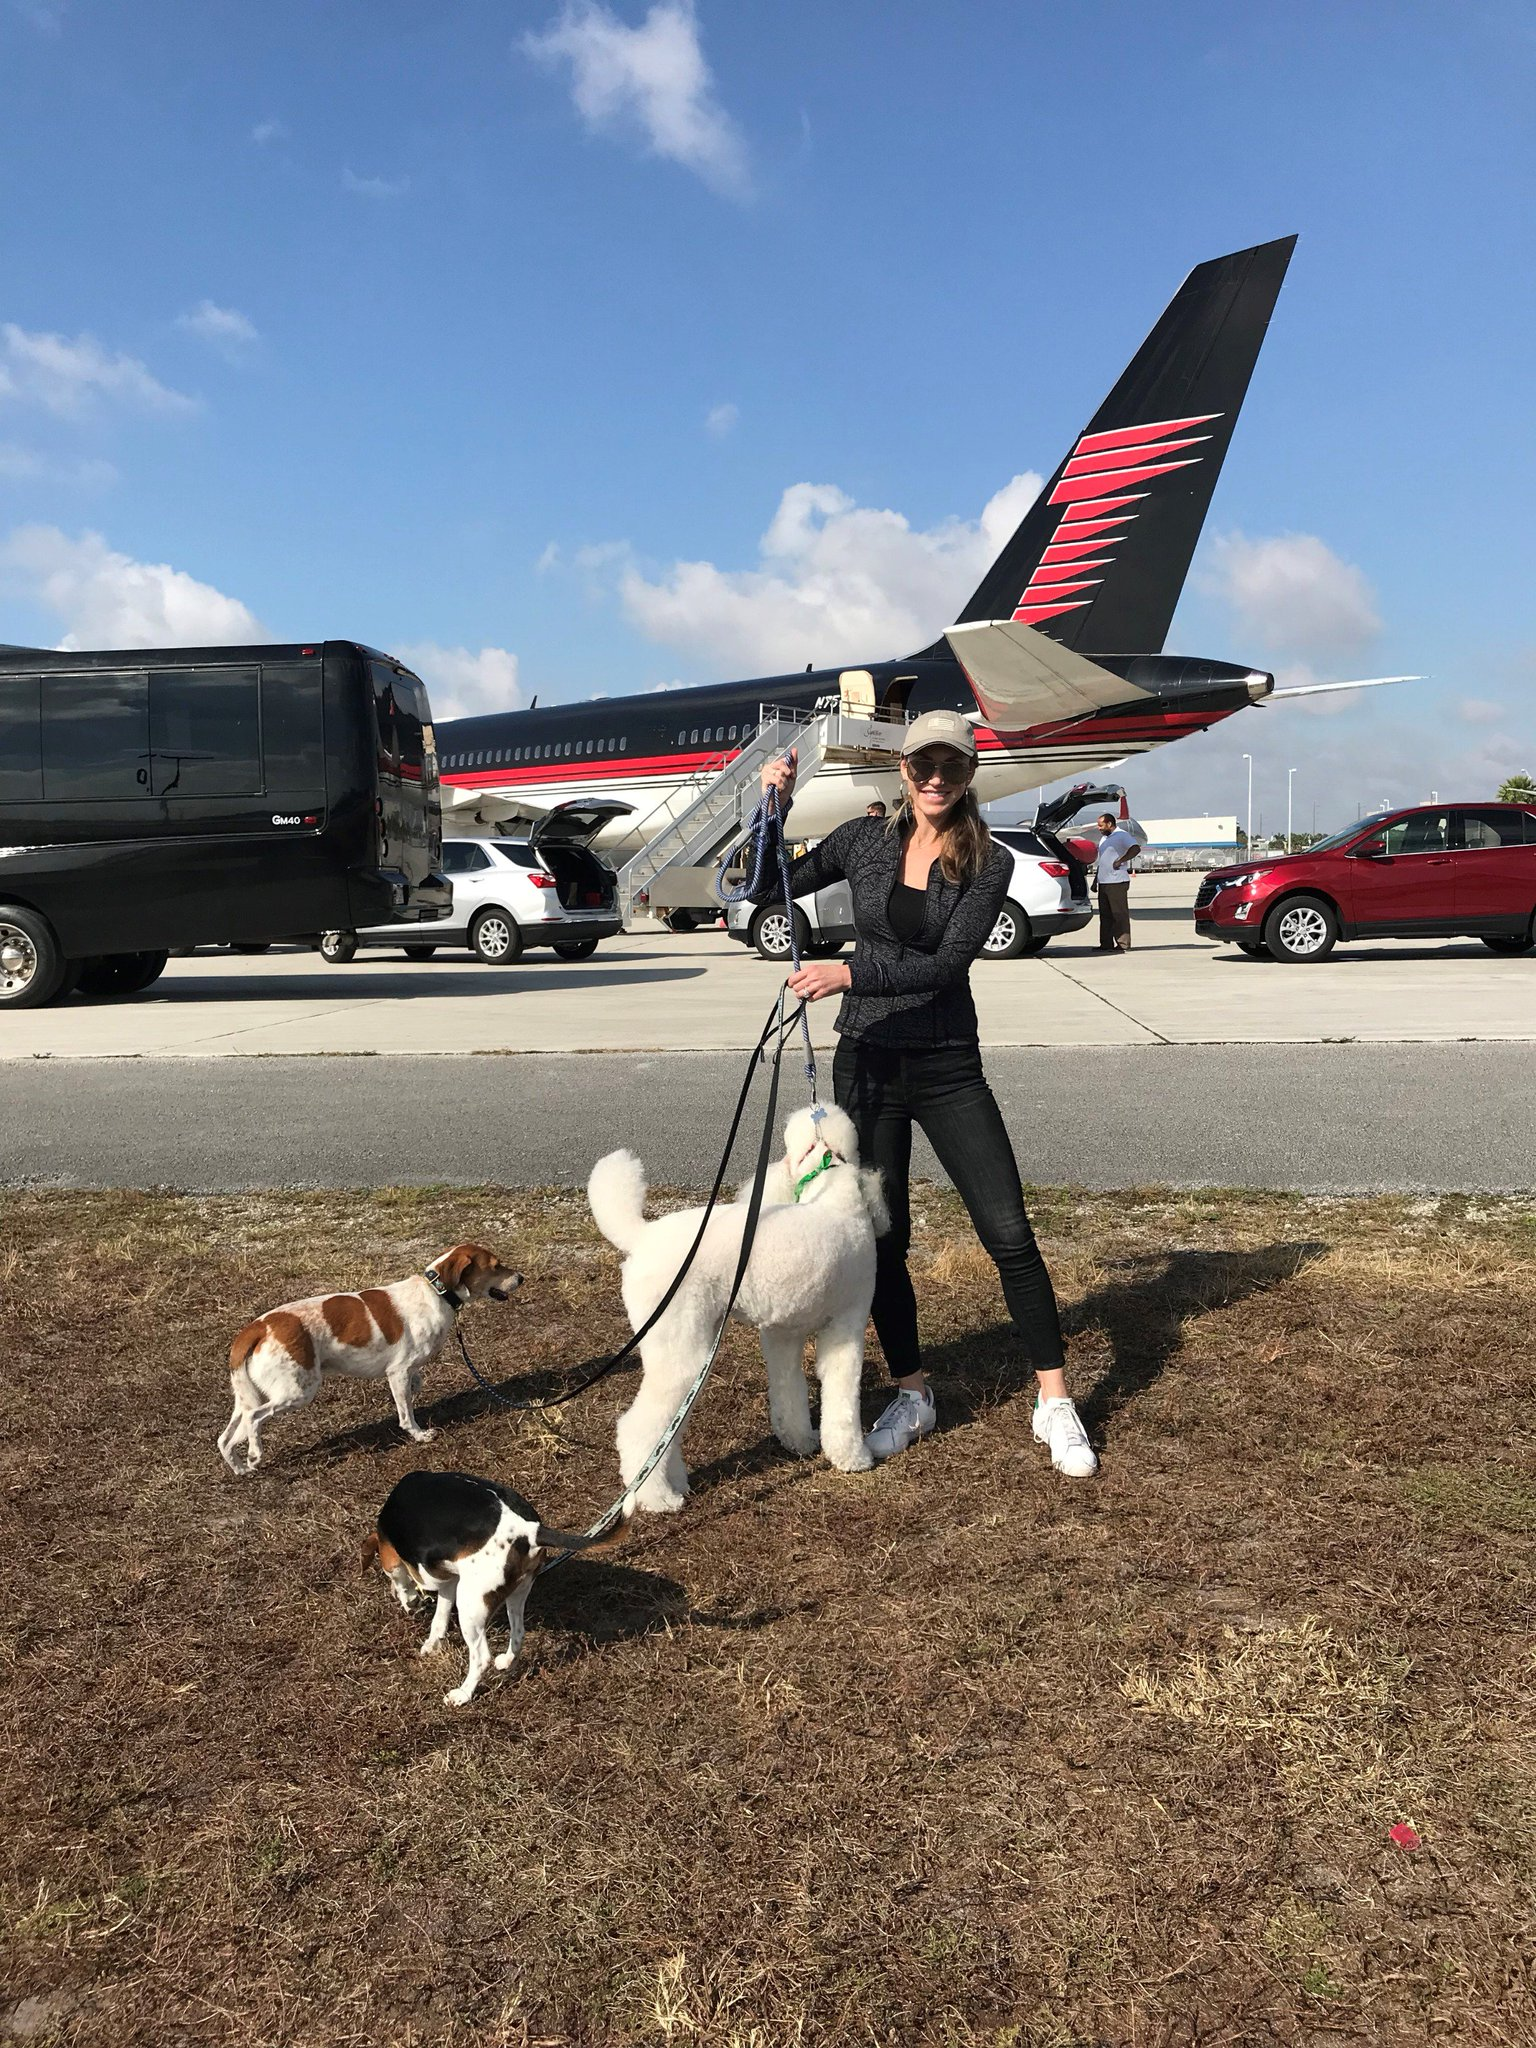 Sir Lancelot in Palm Beach w animal lover @LaraLeaTrump. She's here w her own rescues - Charlie and Ben. �� https://t.co/ClAyzItTlX